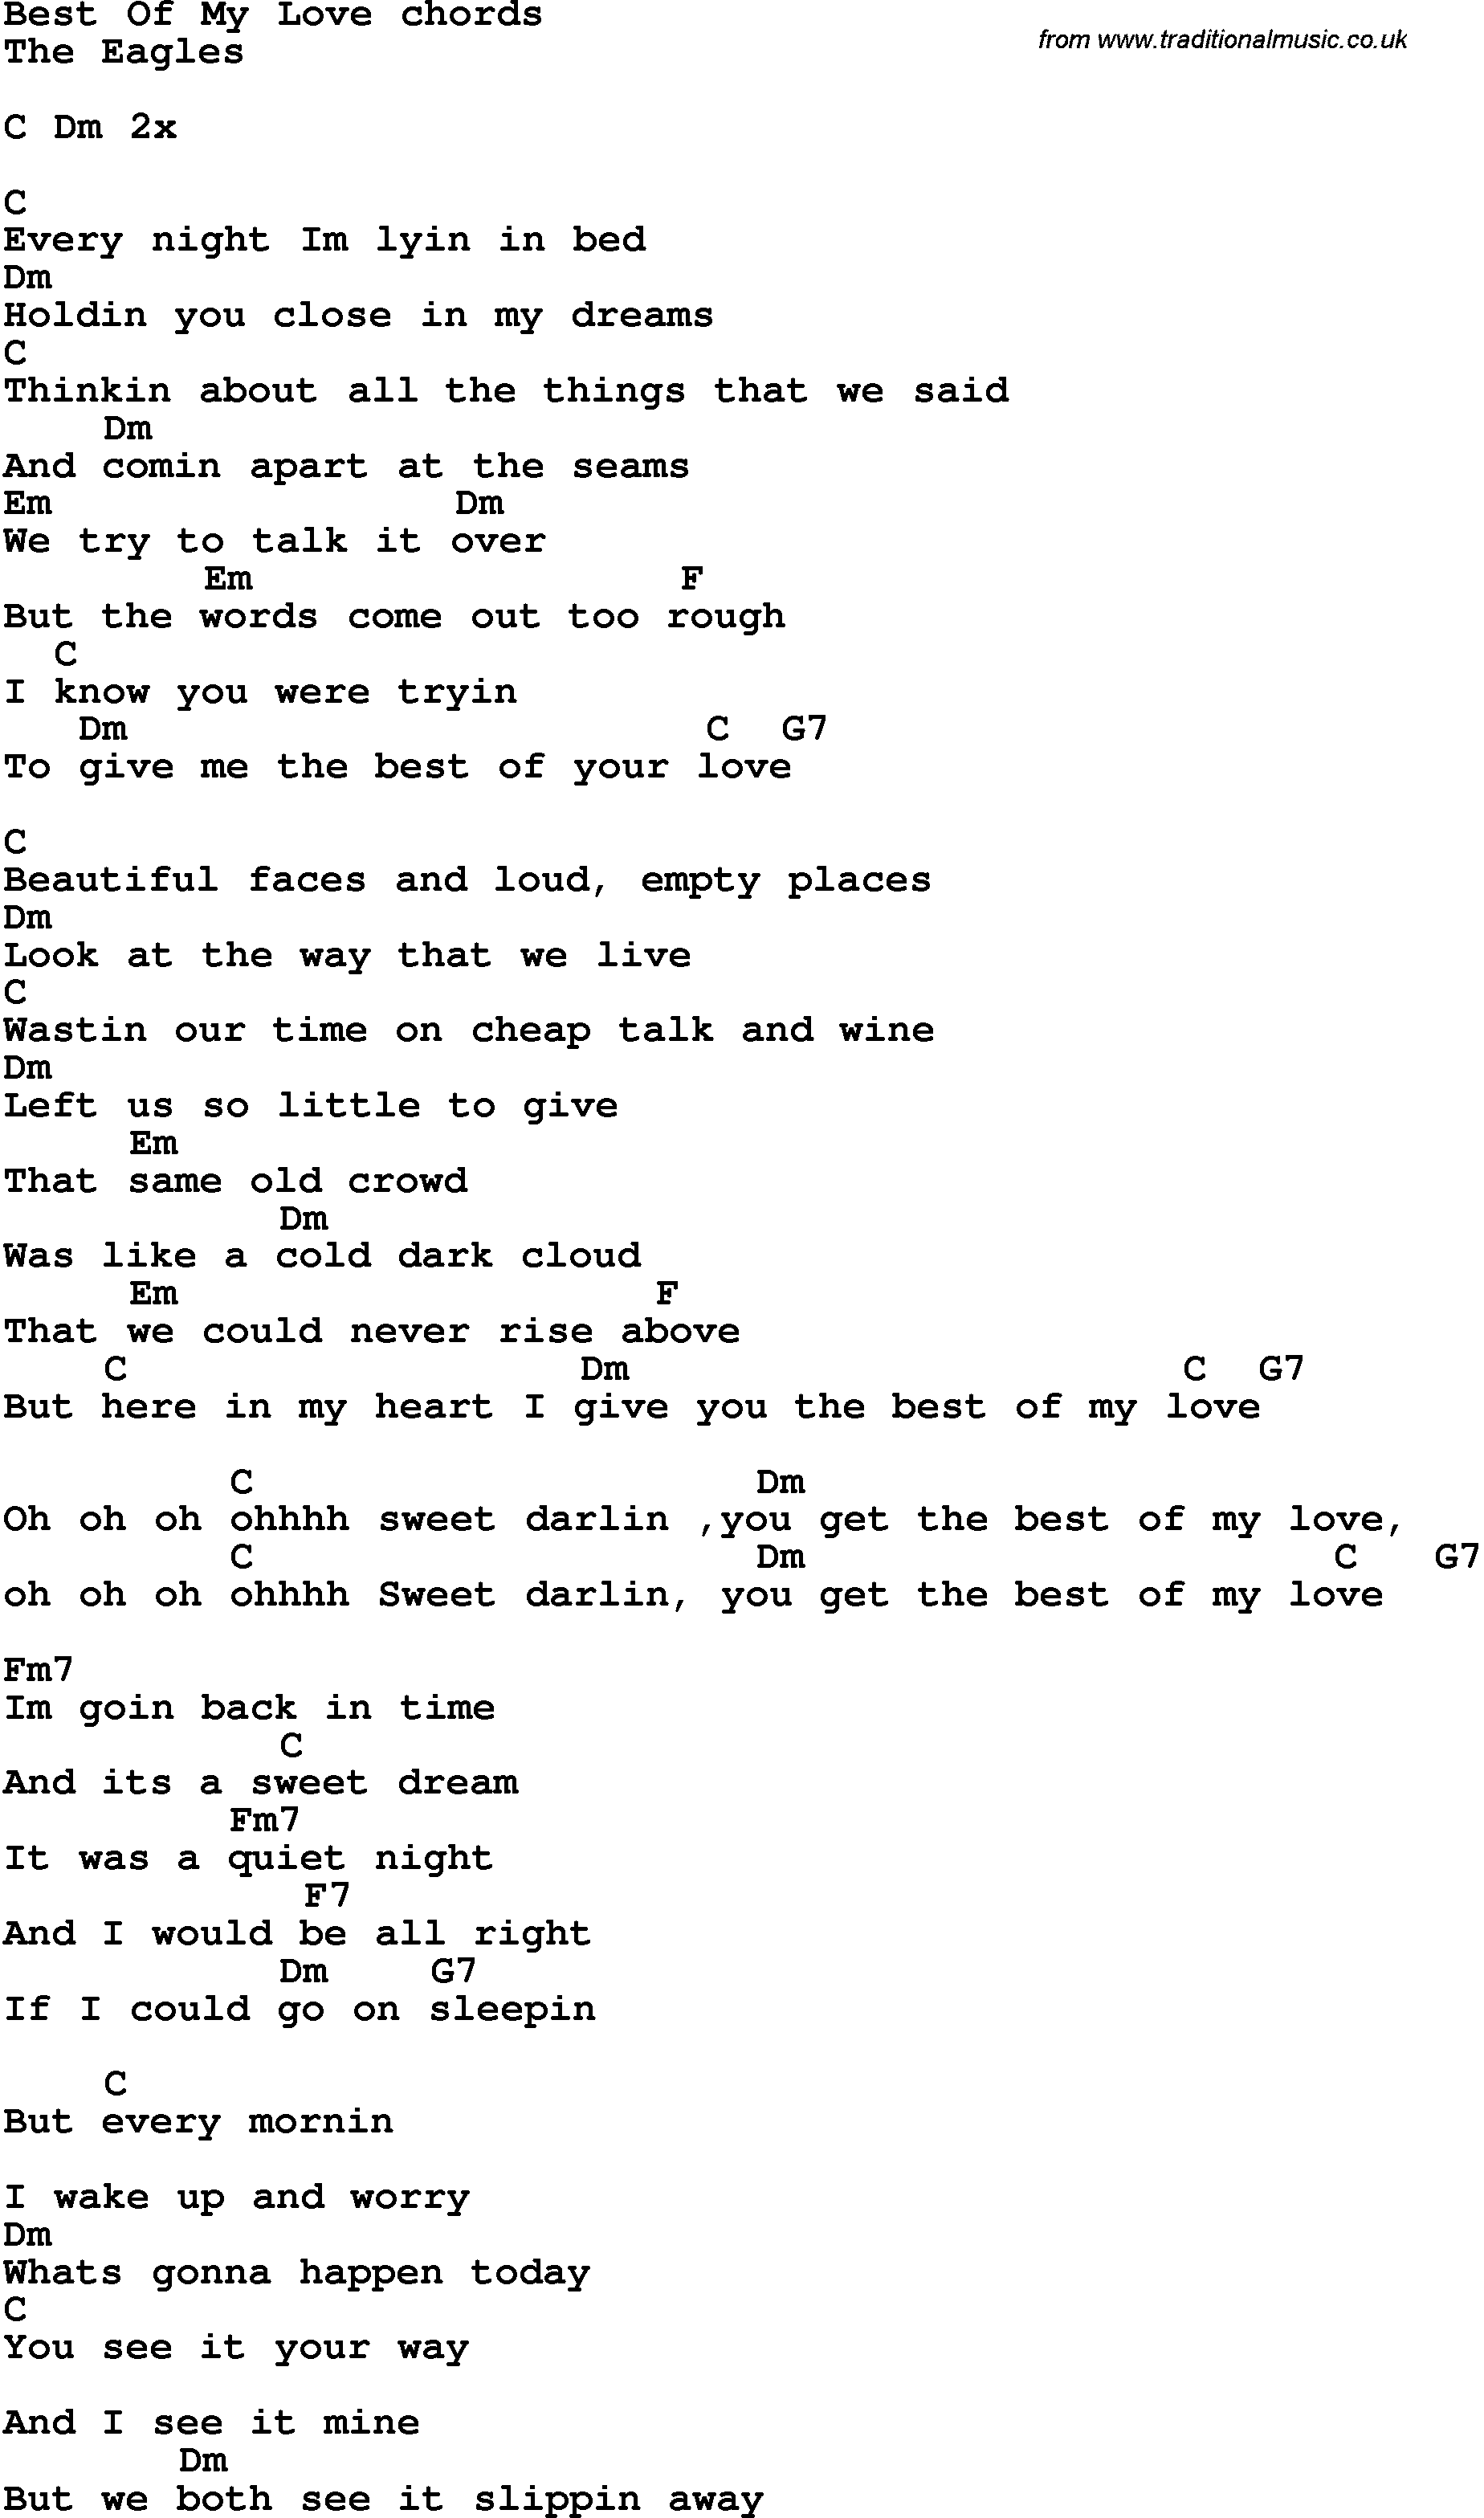 Song Lyrics With Guitar Chords For Best Of My Love